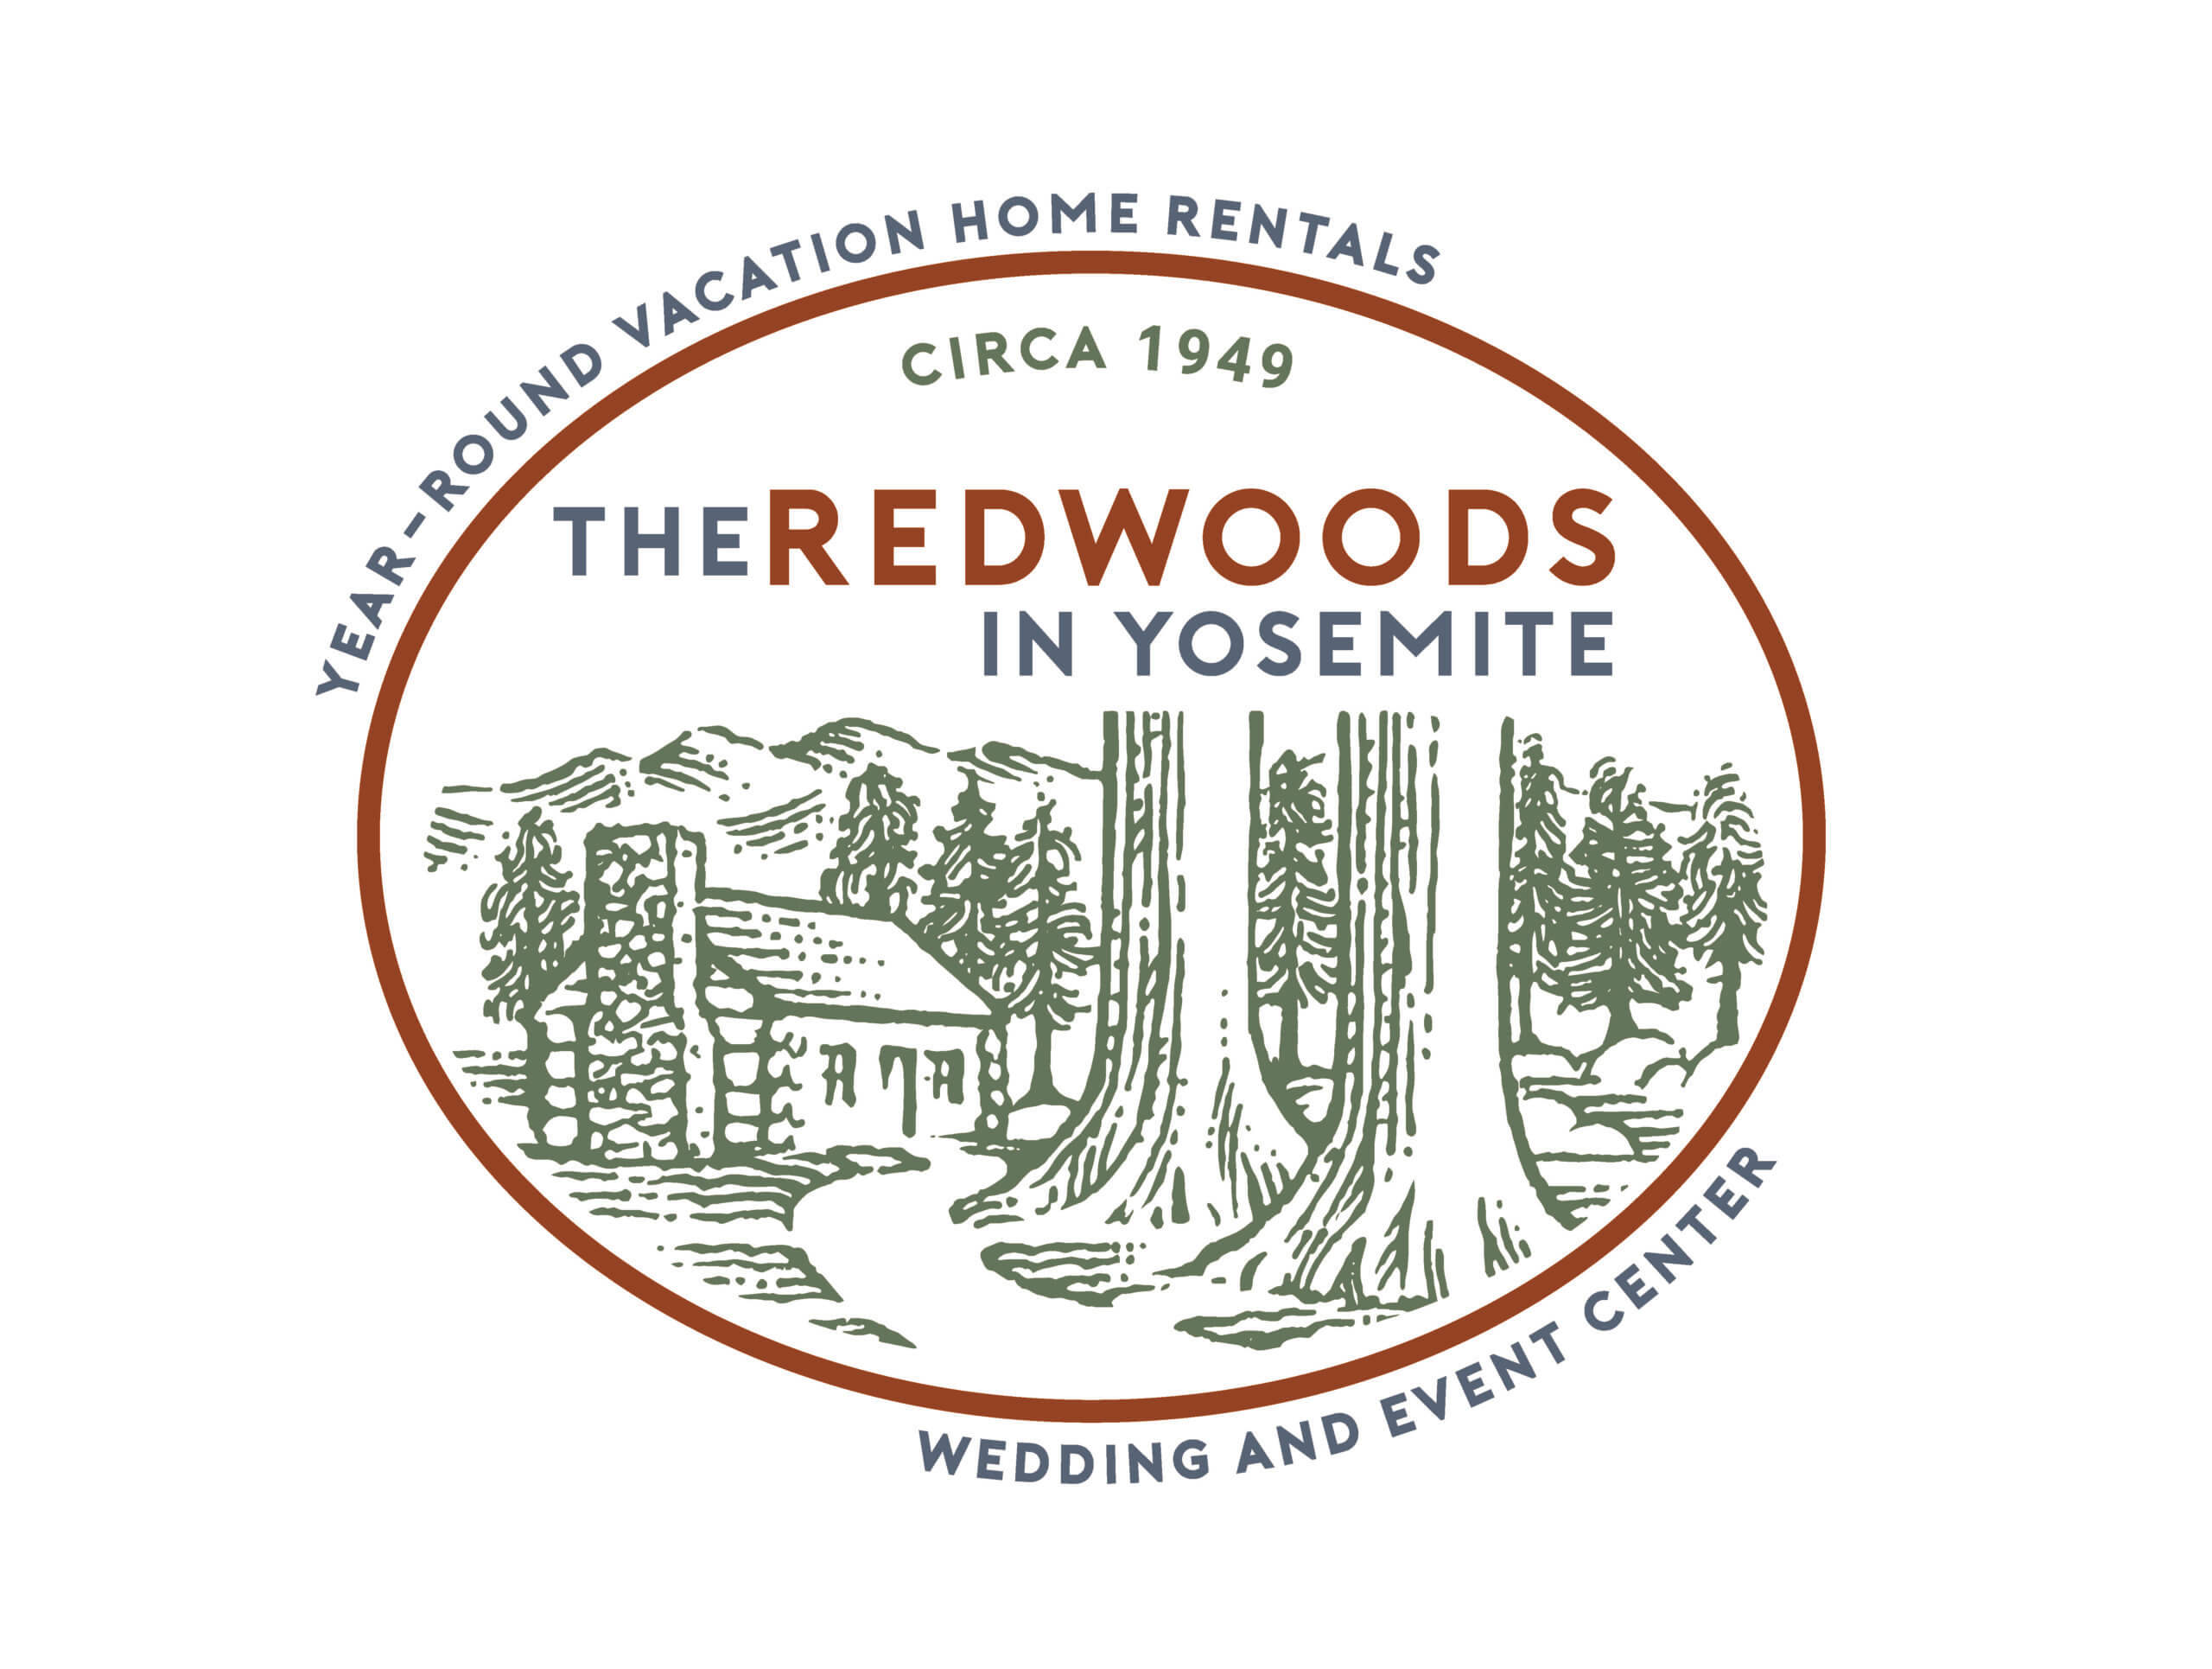 GET 10% OFF AT THE REDWOODS IN YOSEMITE